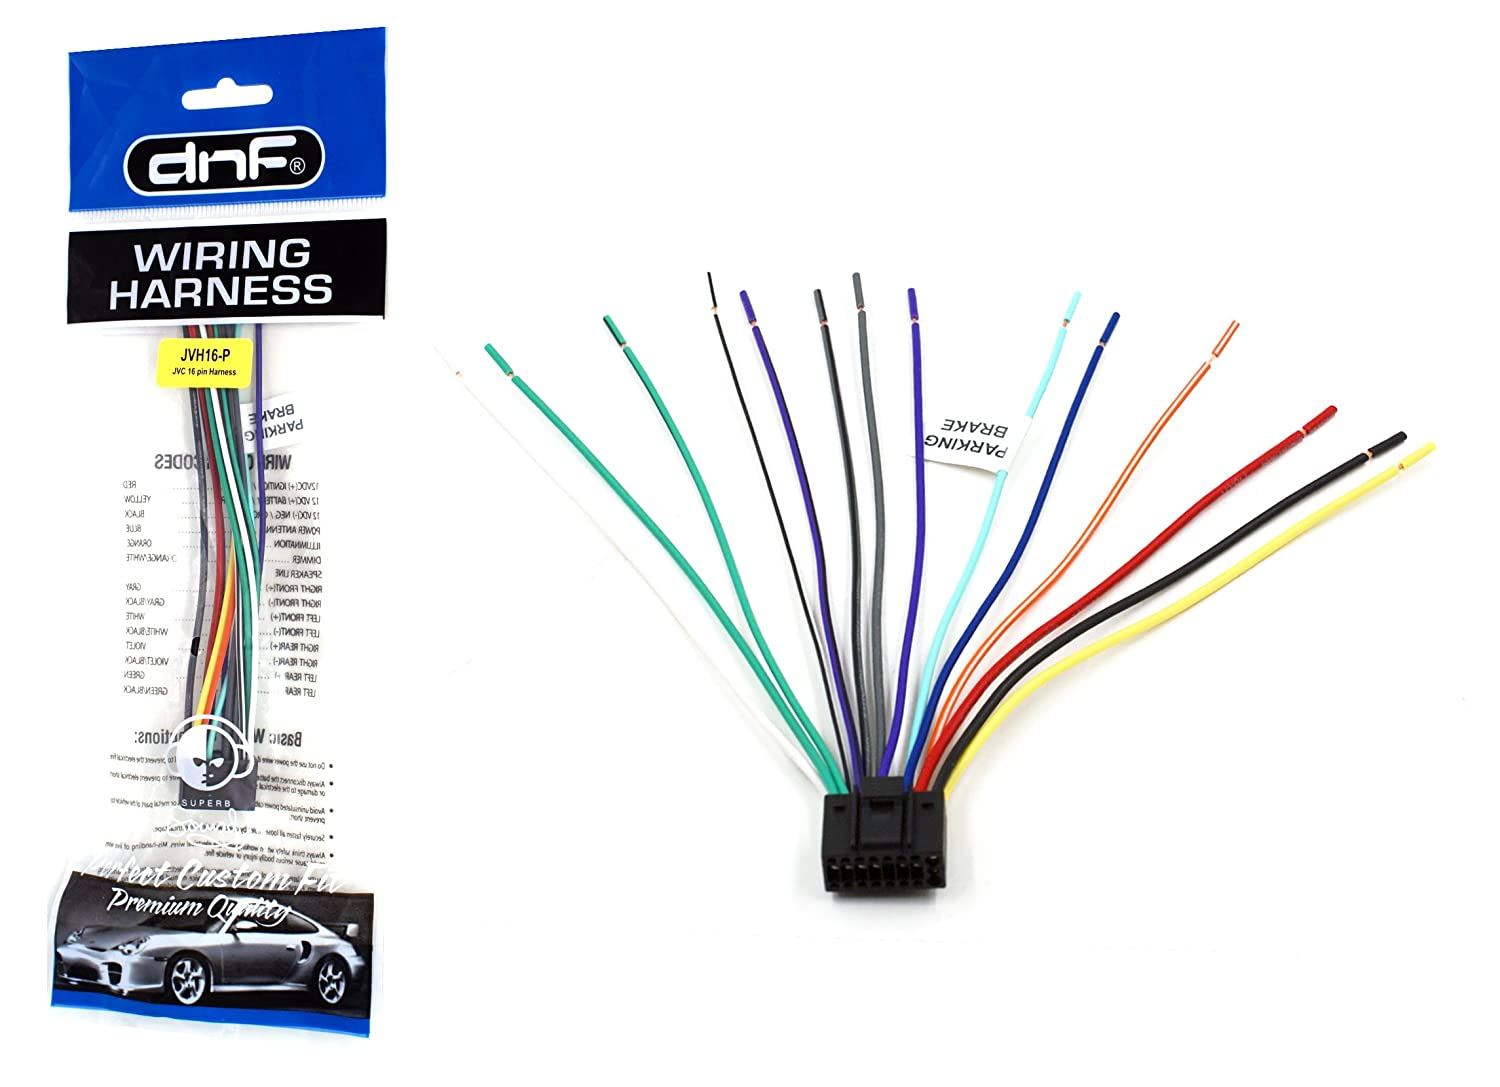 81vur4eVafL._SL1500_ amazon com dnf jvc wiring harness kw avx720 kwavx720 with parking jvc kw-avx720 wiring harness at n-0.co